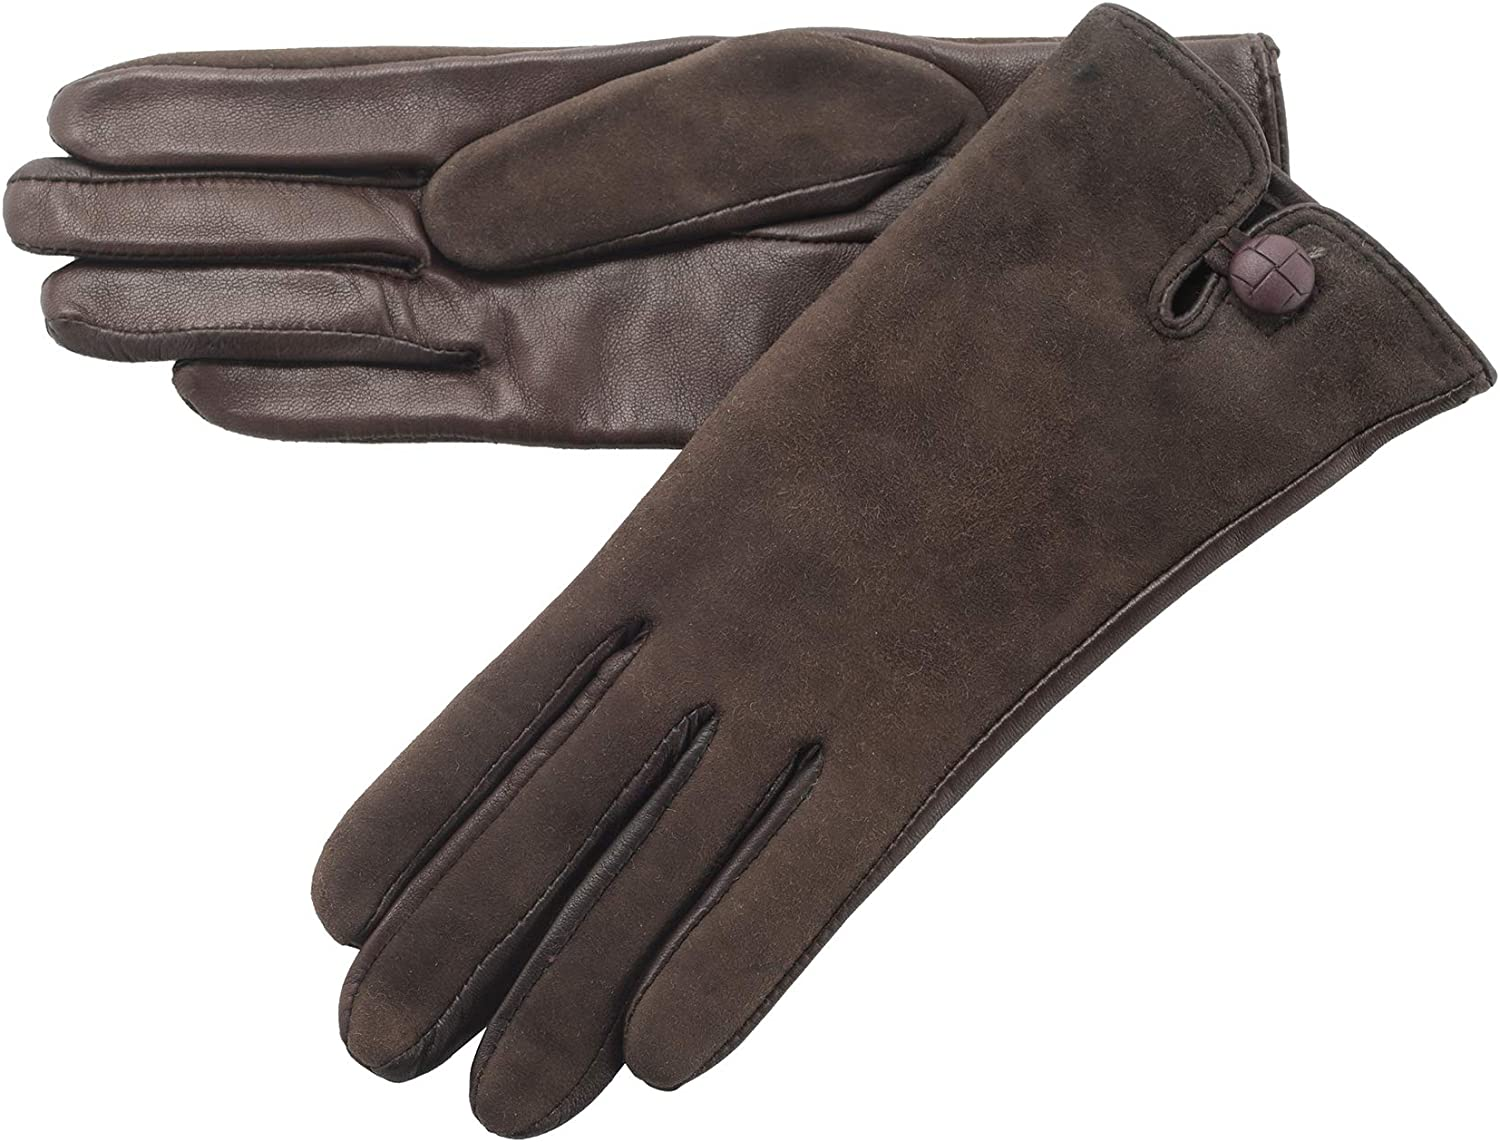 Lambland Ladies Leather Palm Lambskin Back Gloves in Brown Size XLarge